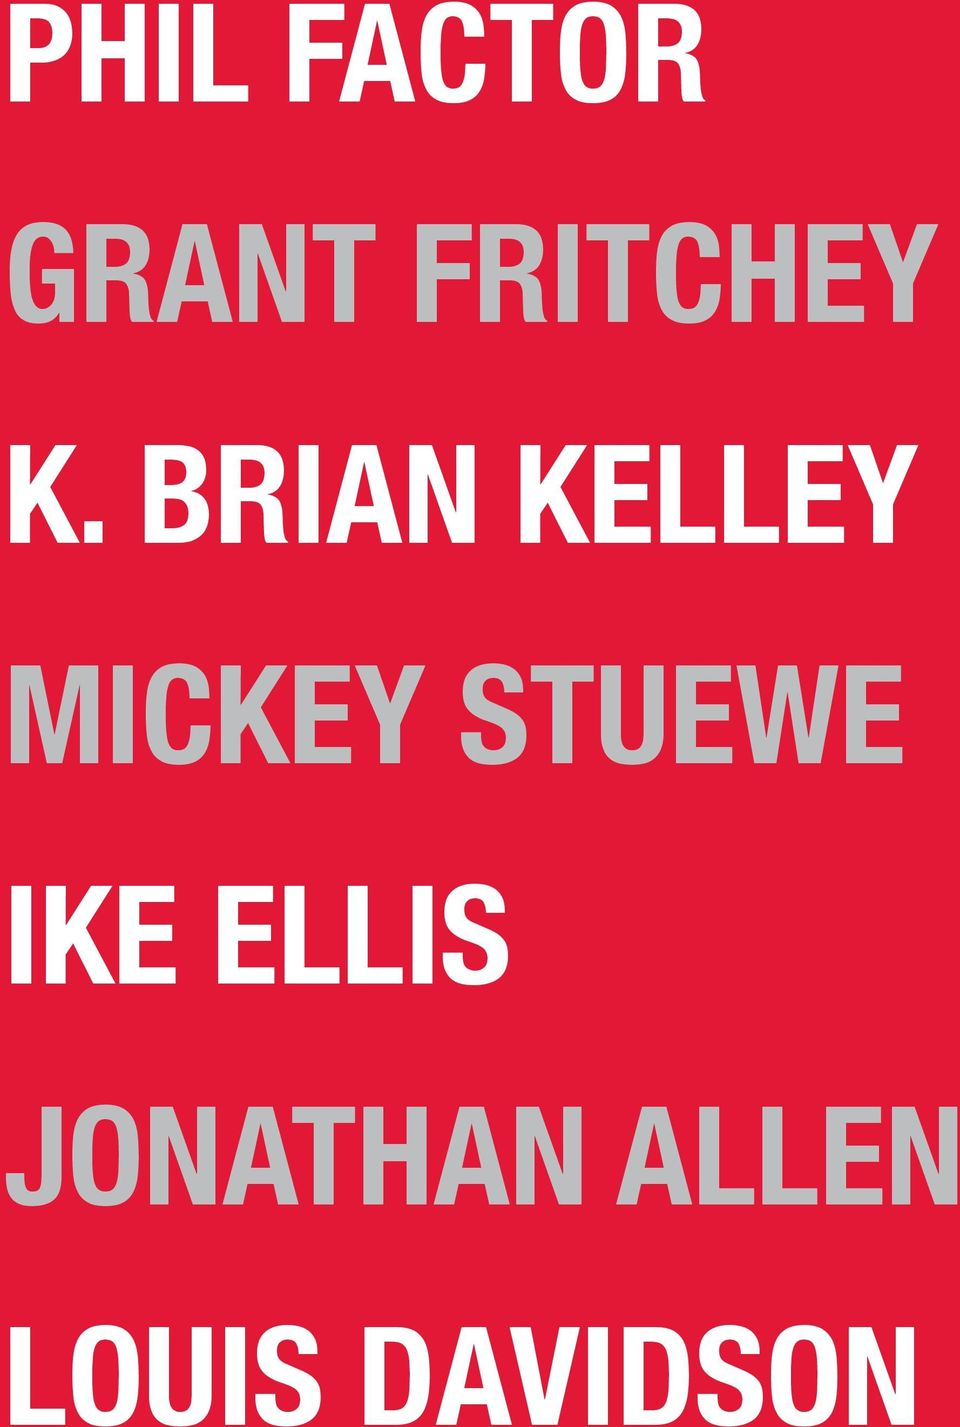 BRIAN KELLEY MICKEY